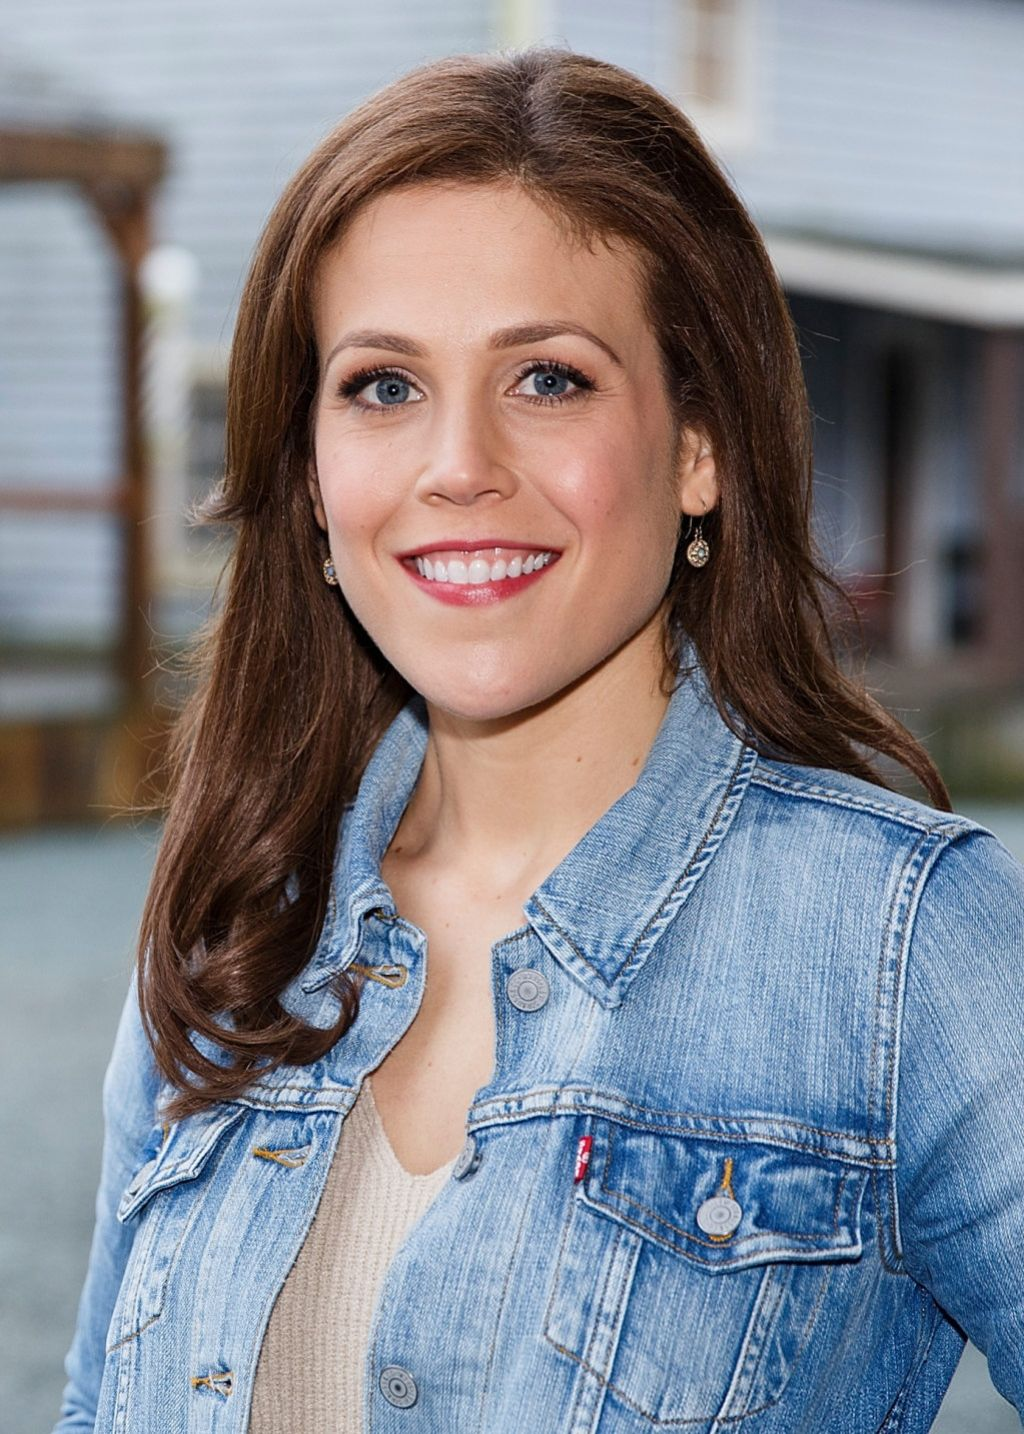 Erin Krakow On Pinterest | Auto Design Tech - photo#23